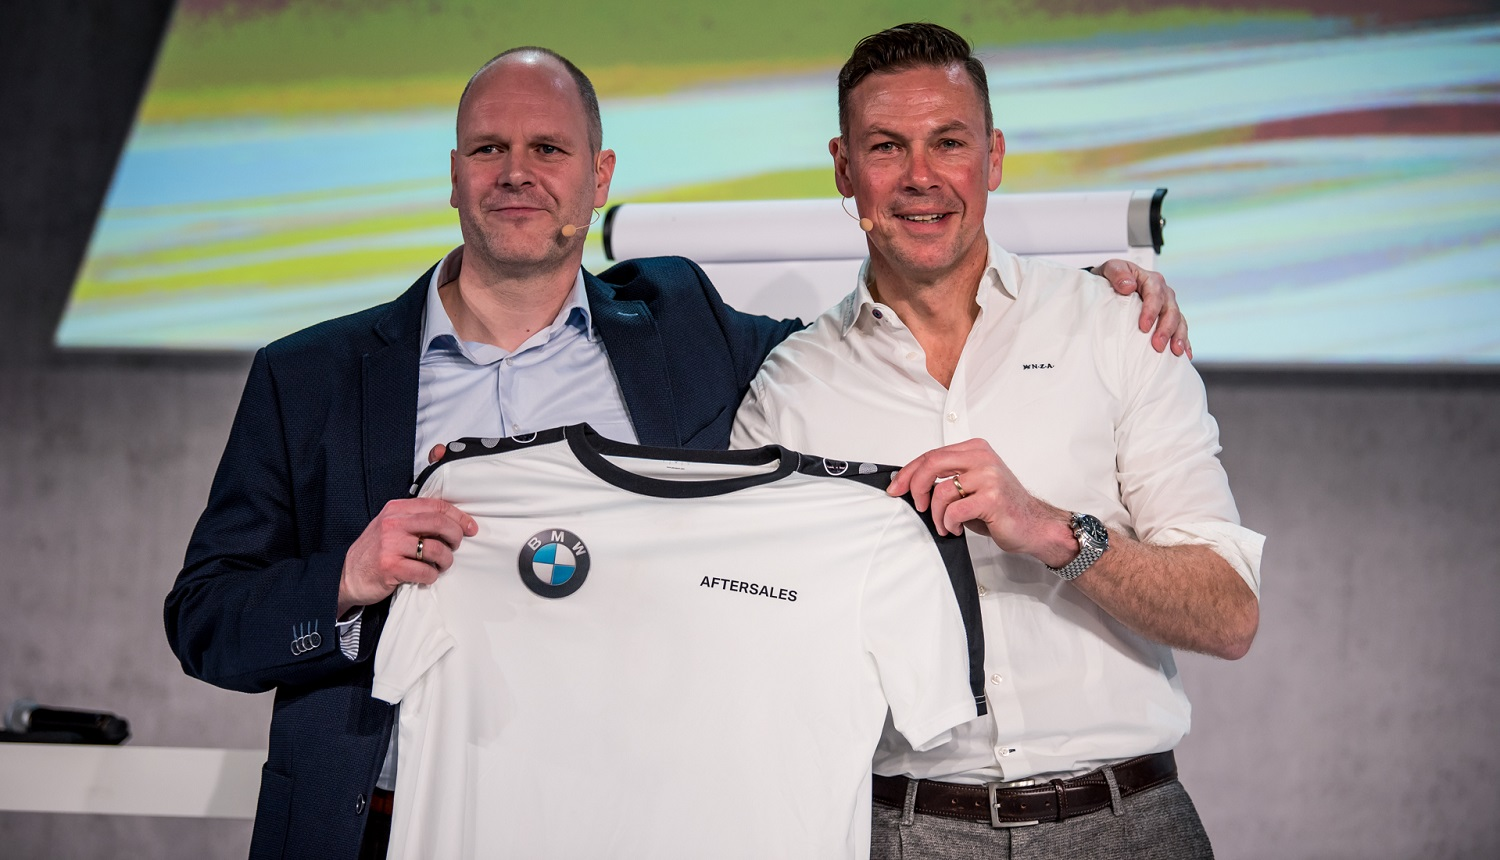 You'll never walk alone mit Keynote Speaker Dr. Holger Schmitz und Erik Meijer